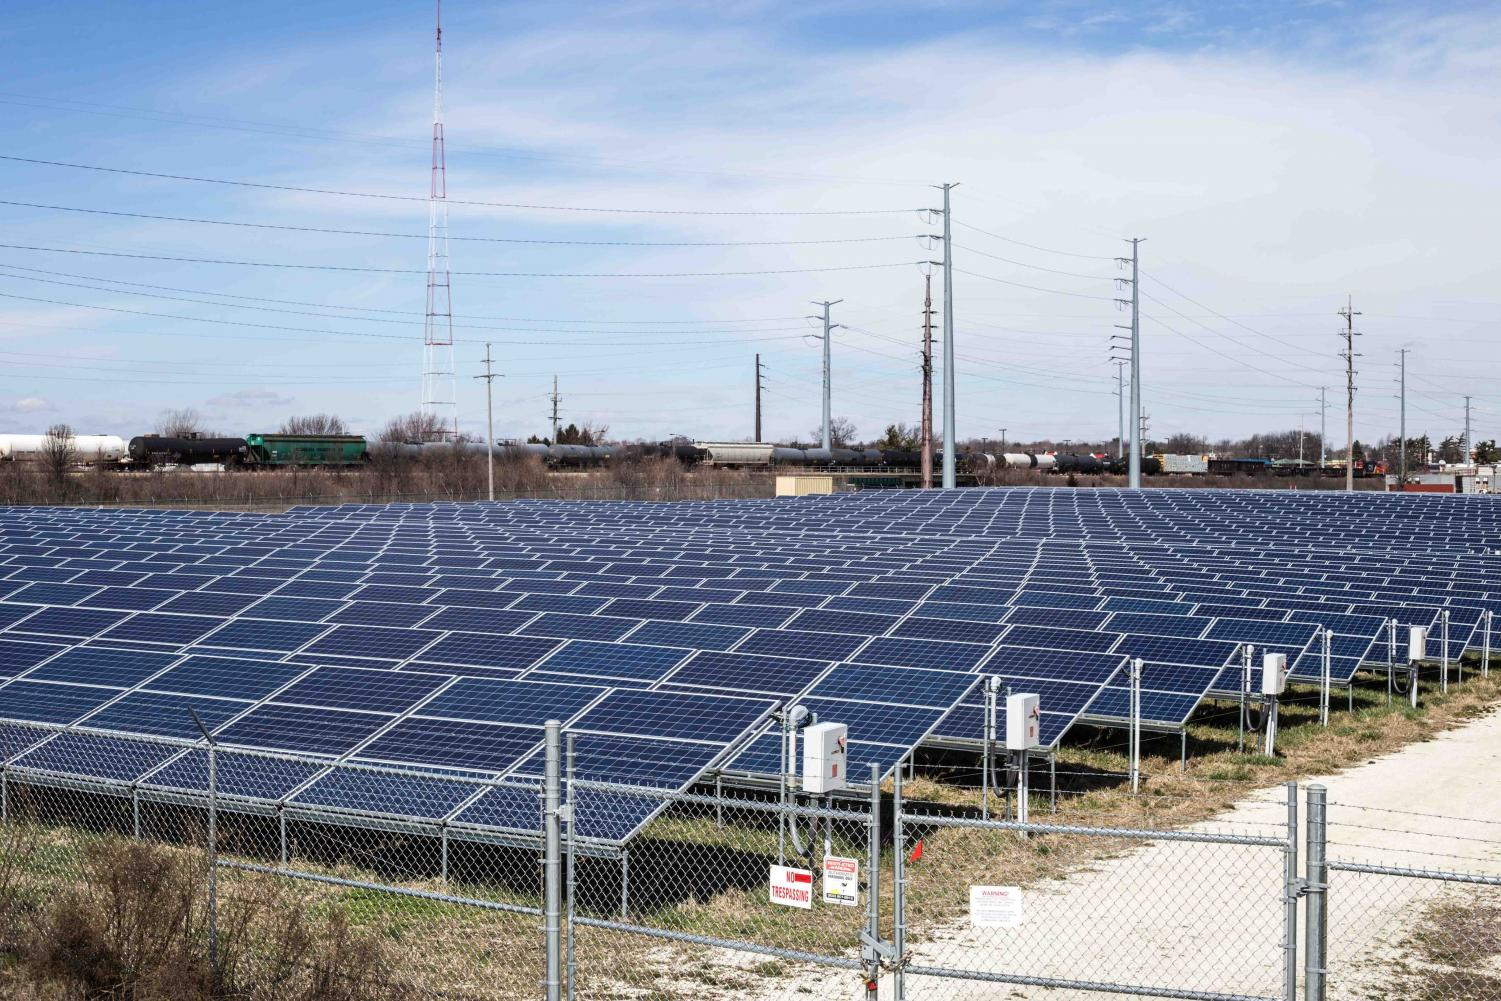 The University of Illinois Solar Farm on Mar. 30, 2018.